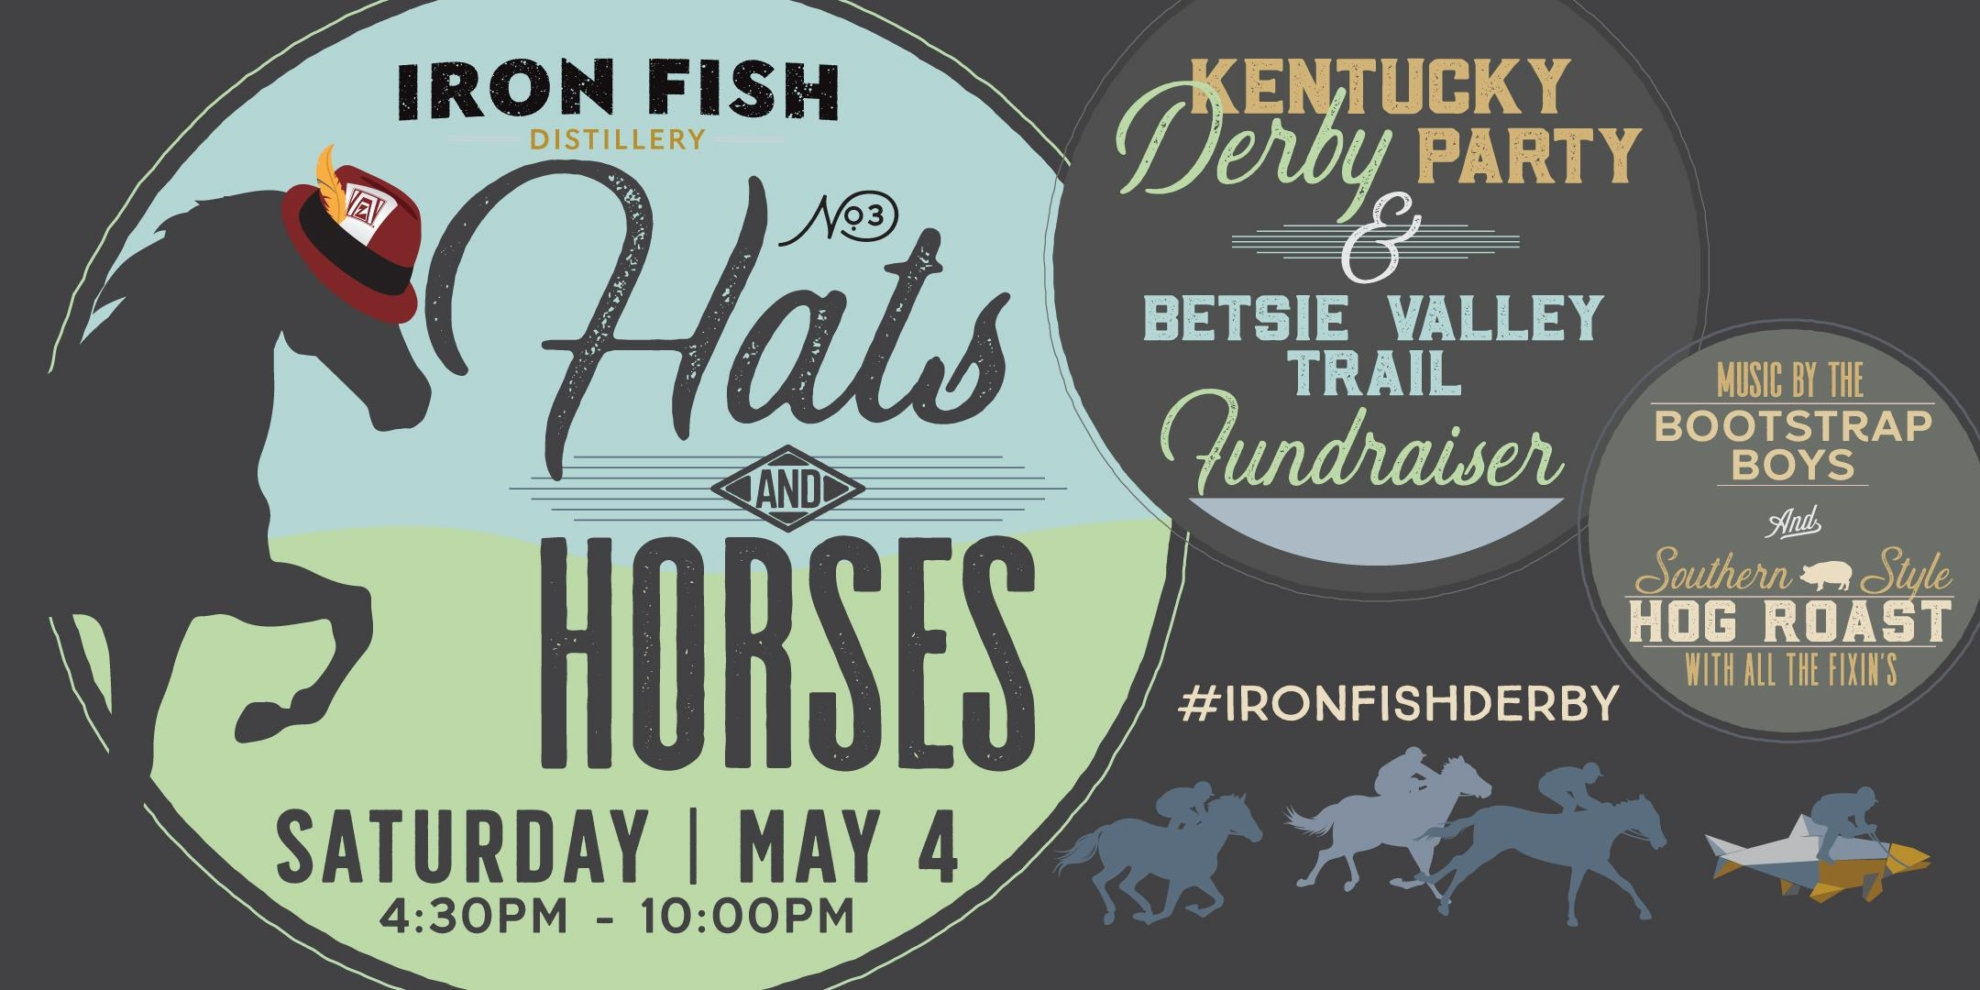 Iron Fish Hats & Horses – Kentucky Derby Party & Betsie Valley Trail Fundraiser